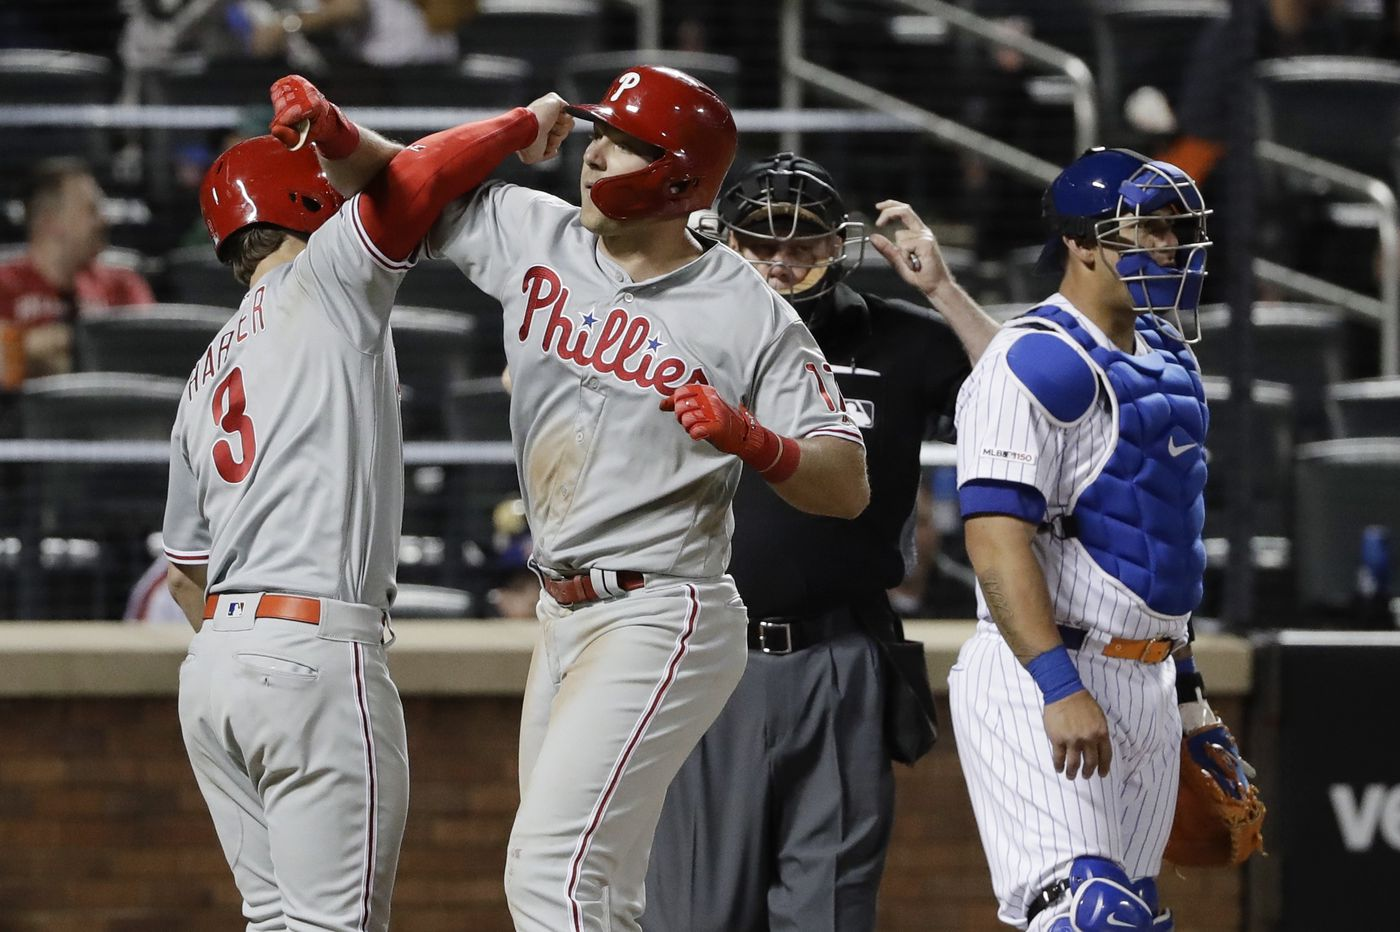 Phillies' bad road trip ends on a good note with revenge win over Mets | Bob Brookover